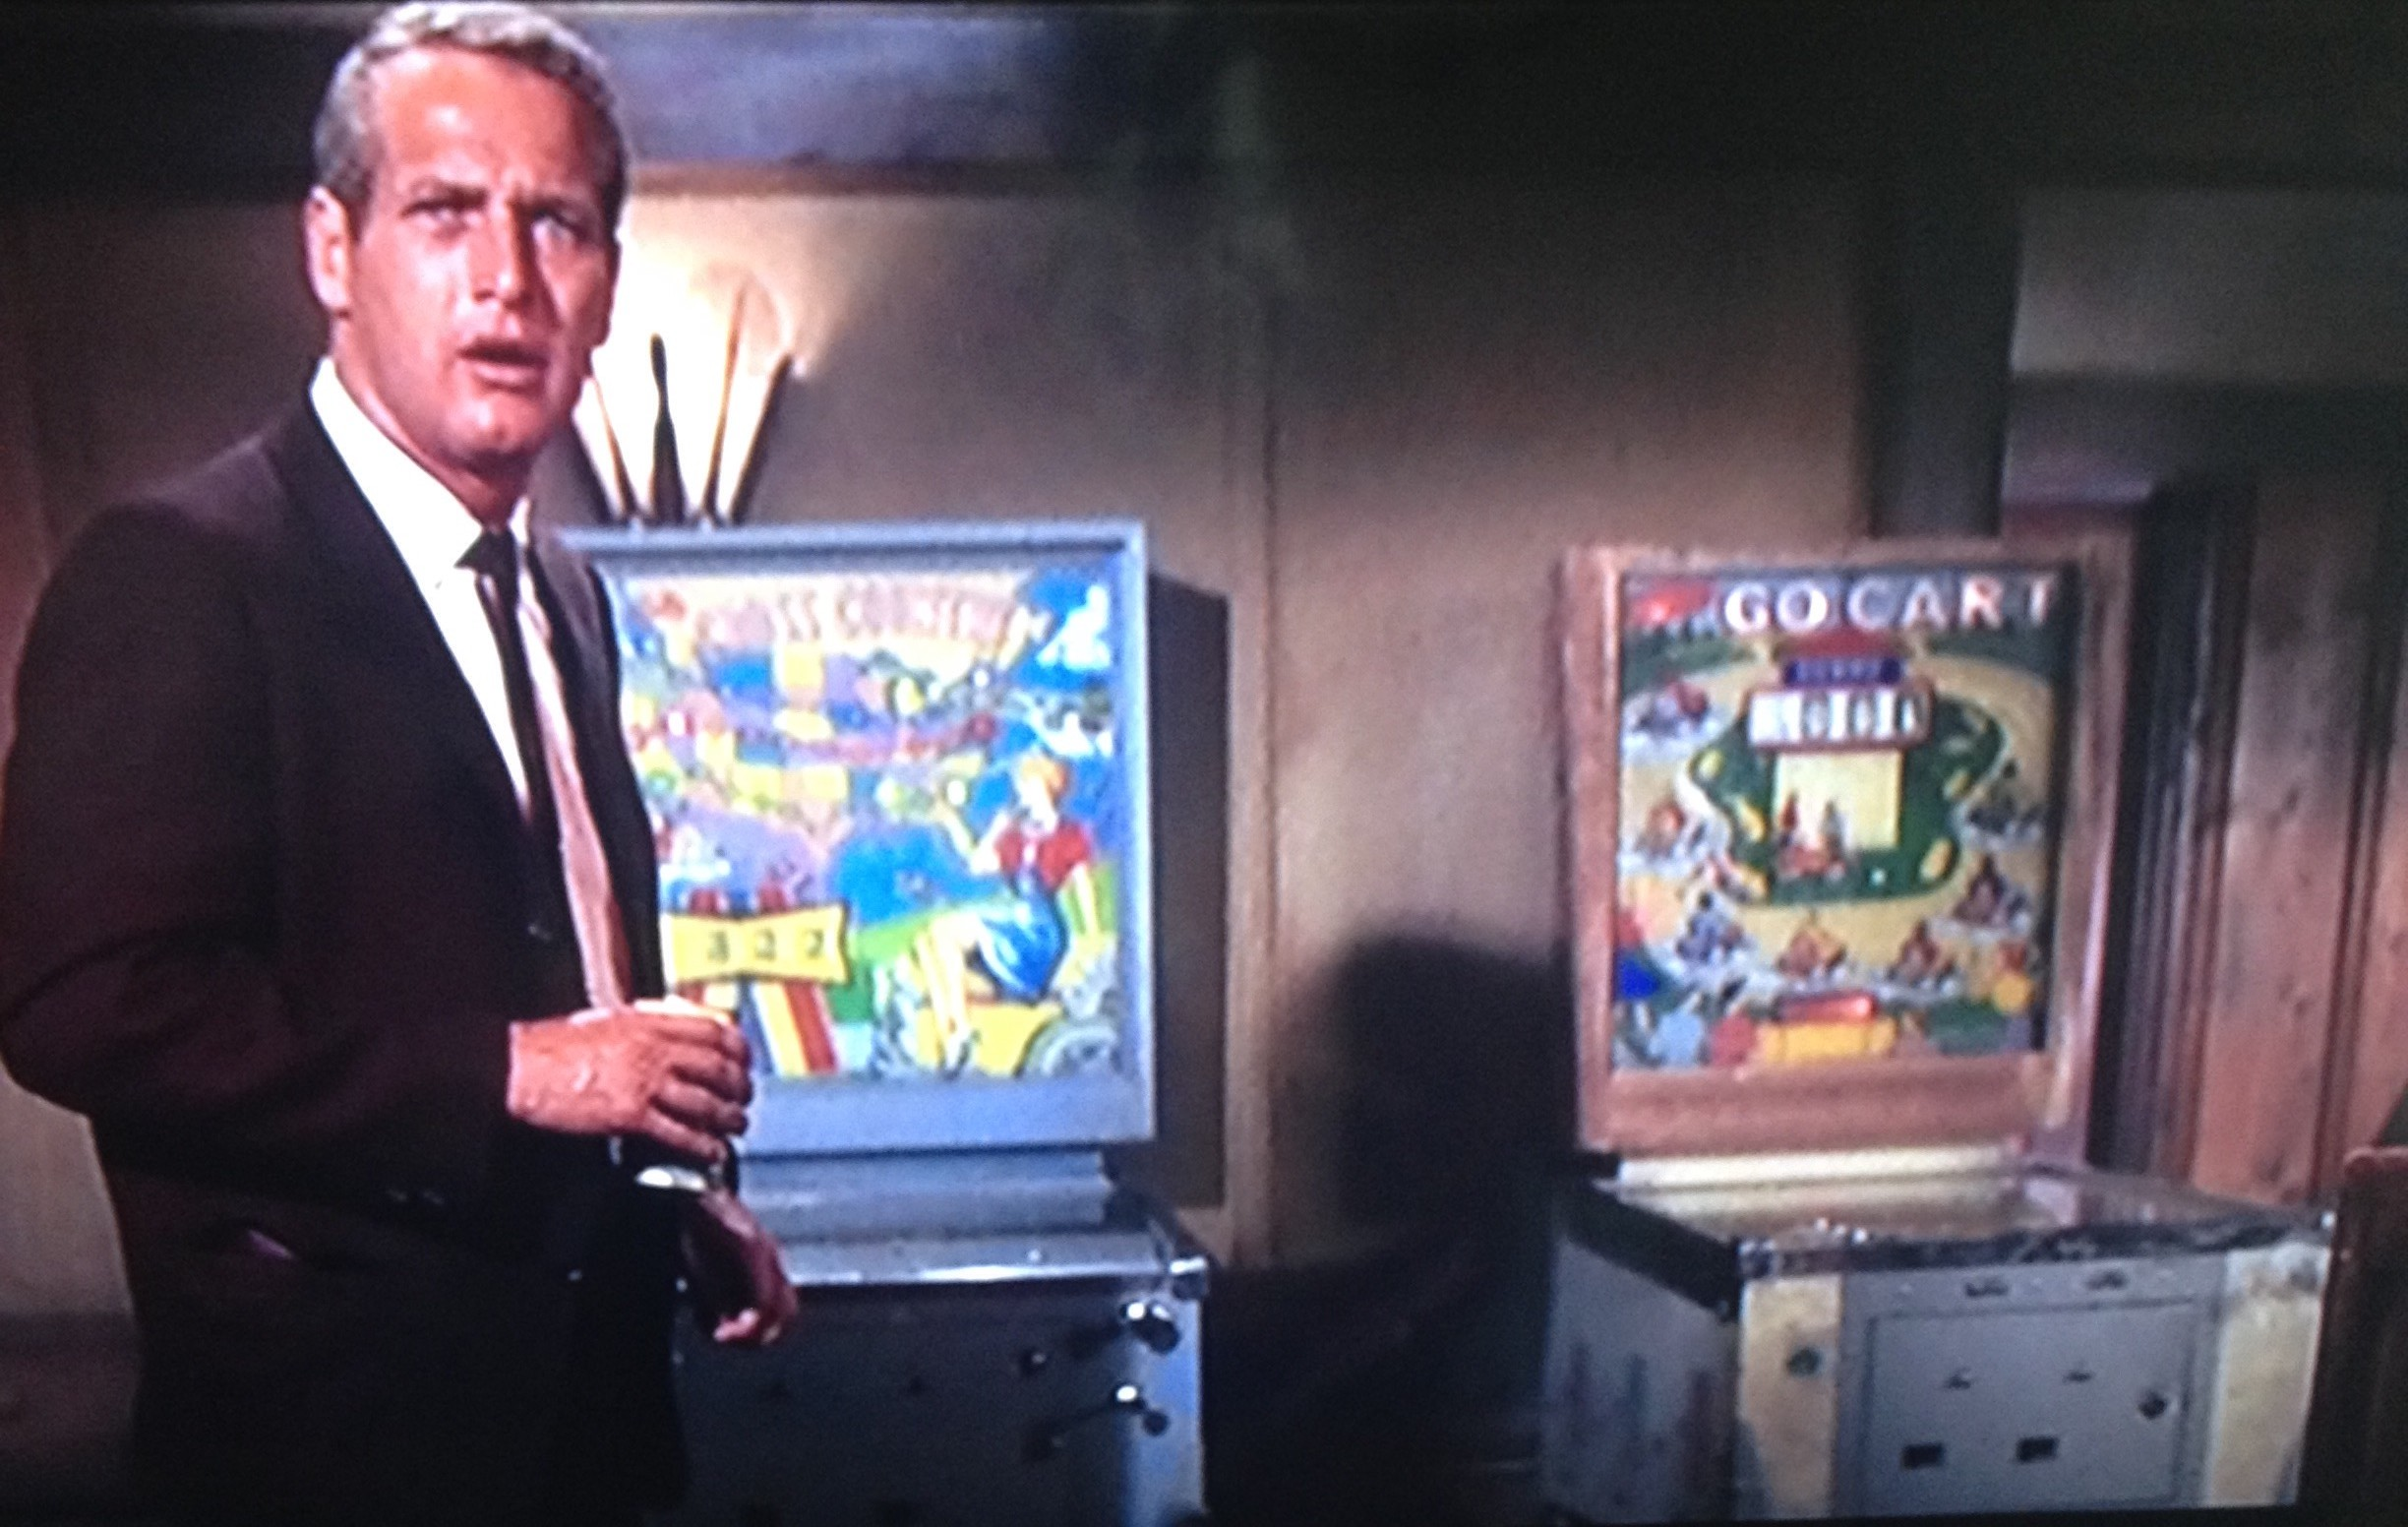 Pinball In The Movies Page 2 Short Circuit Slot Machine Williams Wms Machines Reel Gambling Bar Scene 1 Hour 3 Minutes Into Movie Screen Shot